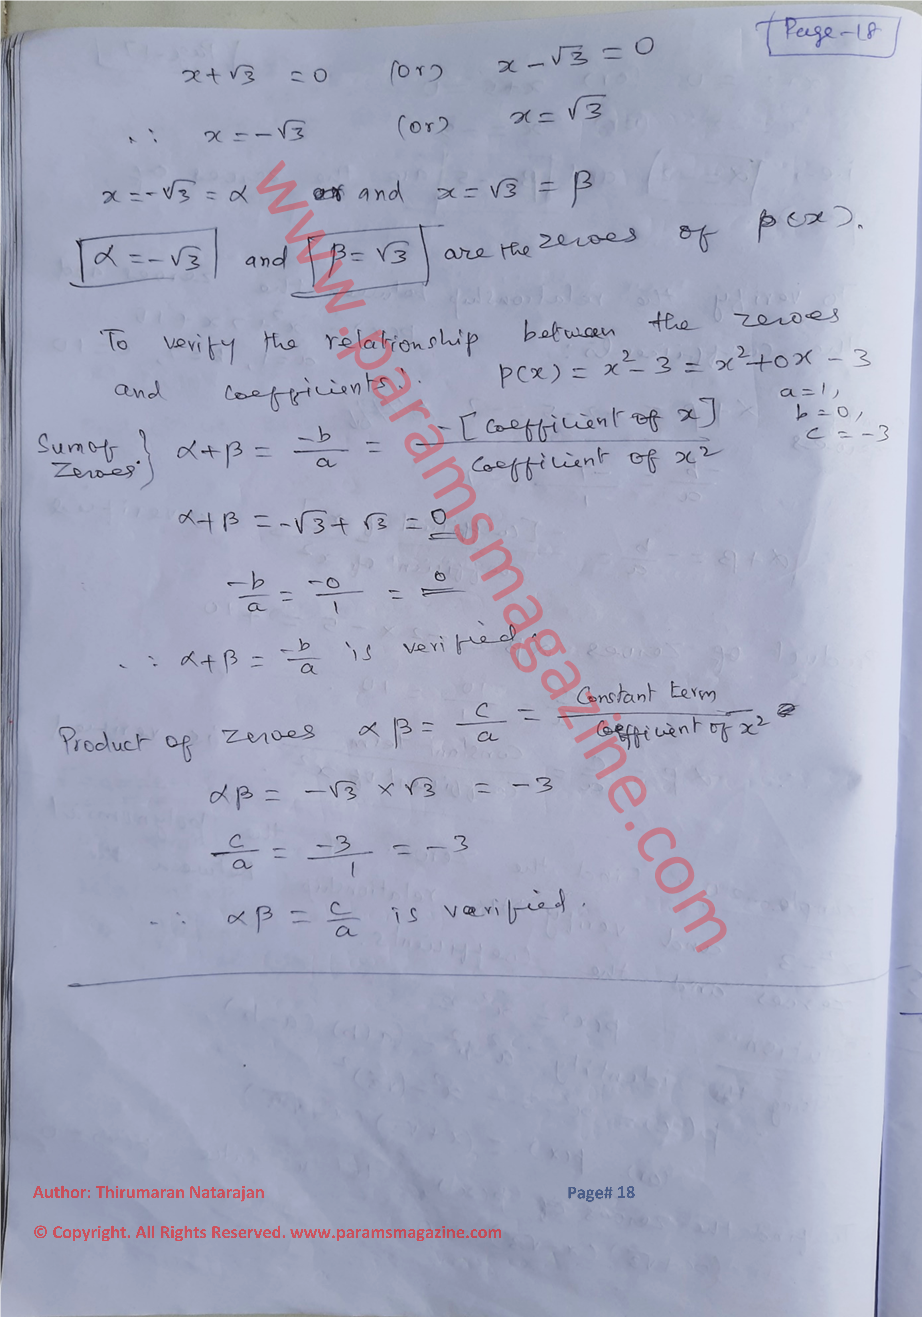 Class-10 - Polynomials - Notes - Page-18